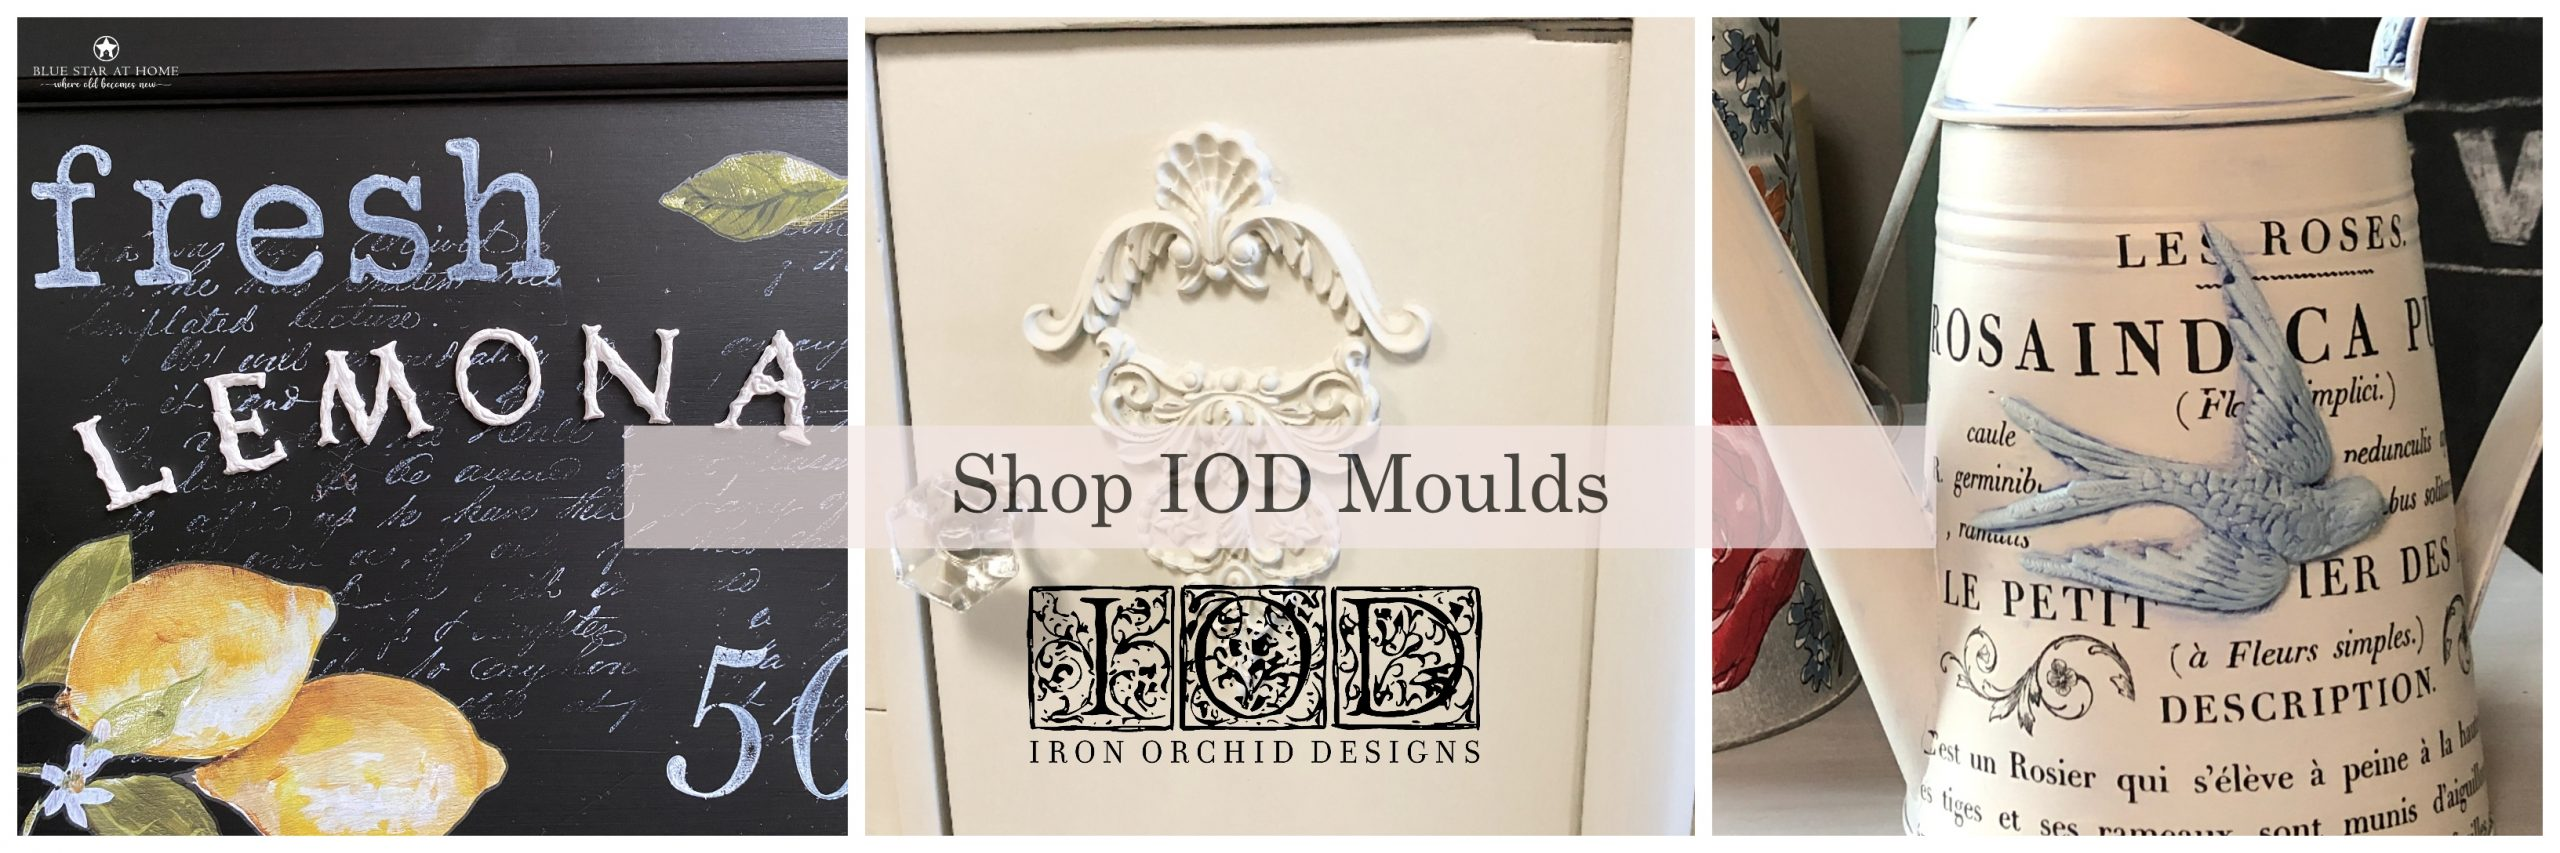 Blue Star at Home Shop IOD Moulds